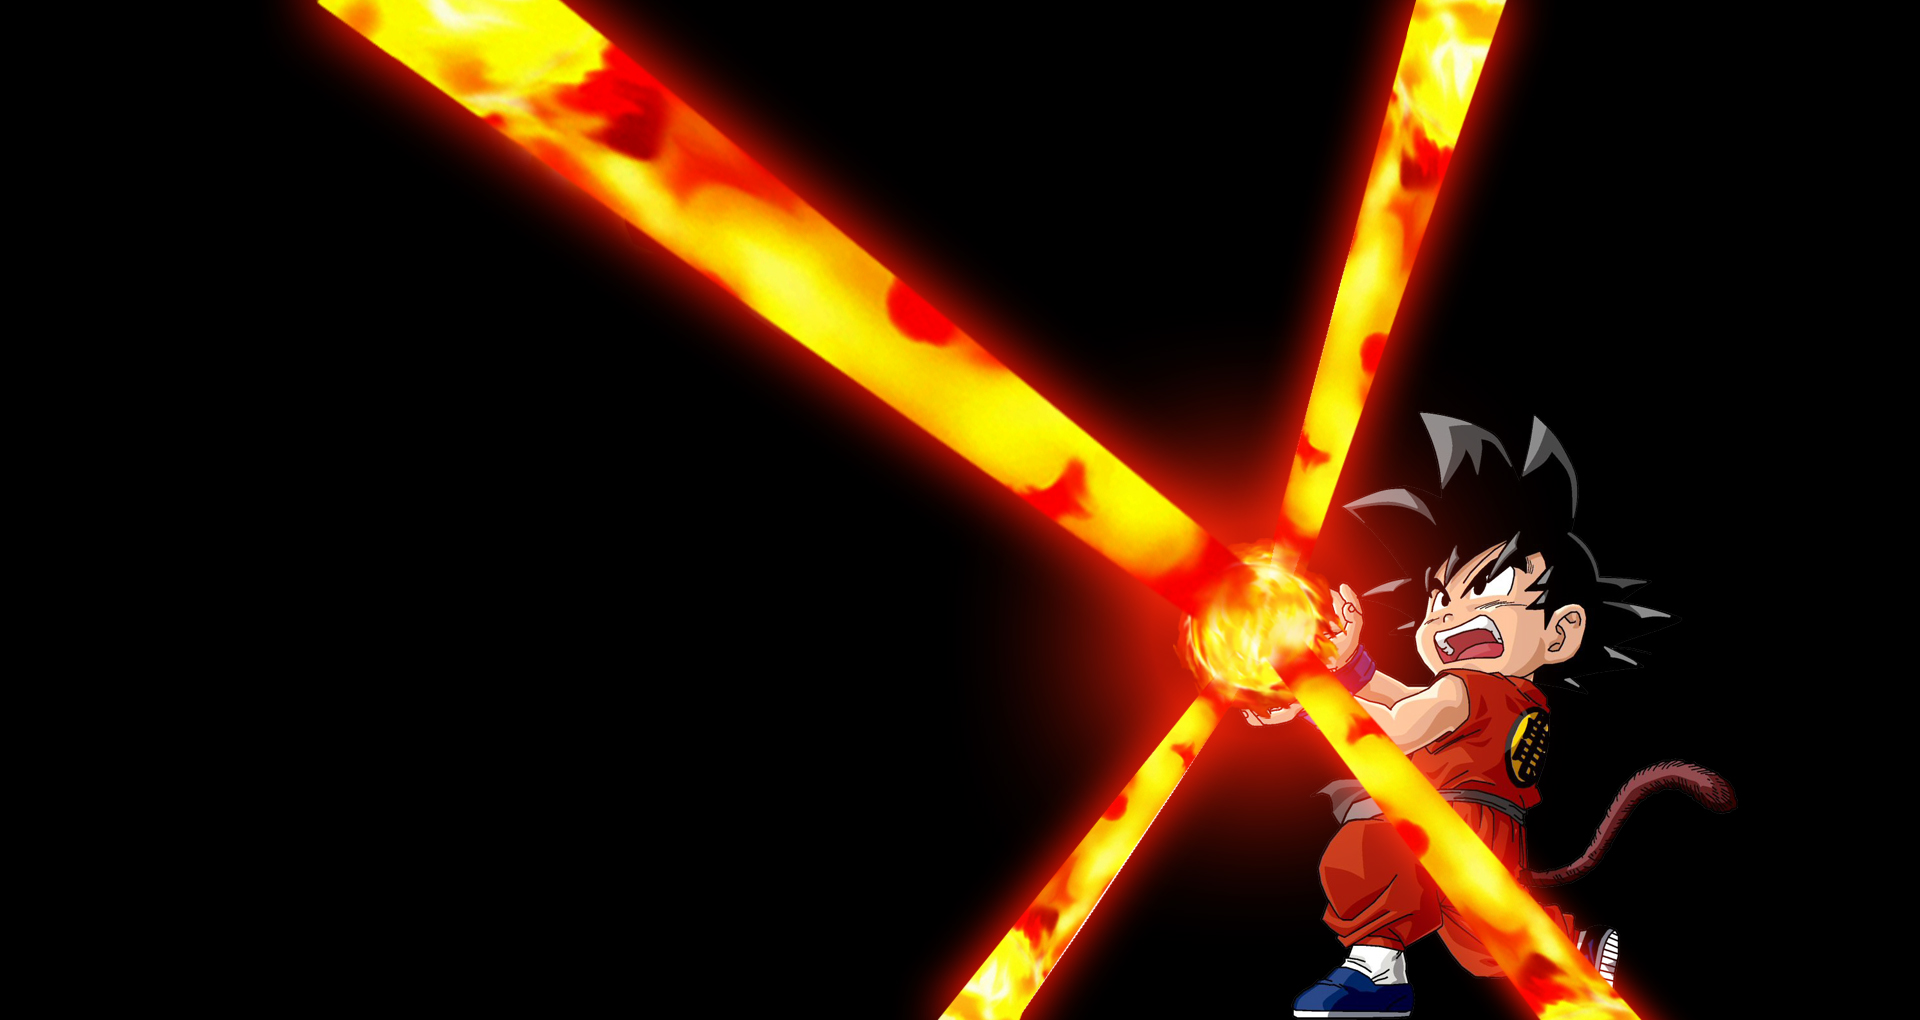 Goku Dragonball Z Anime Wallpaper 1920x1020 75187 Wallpaperup